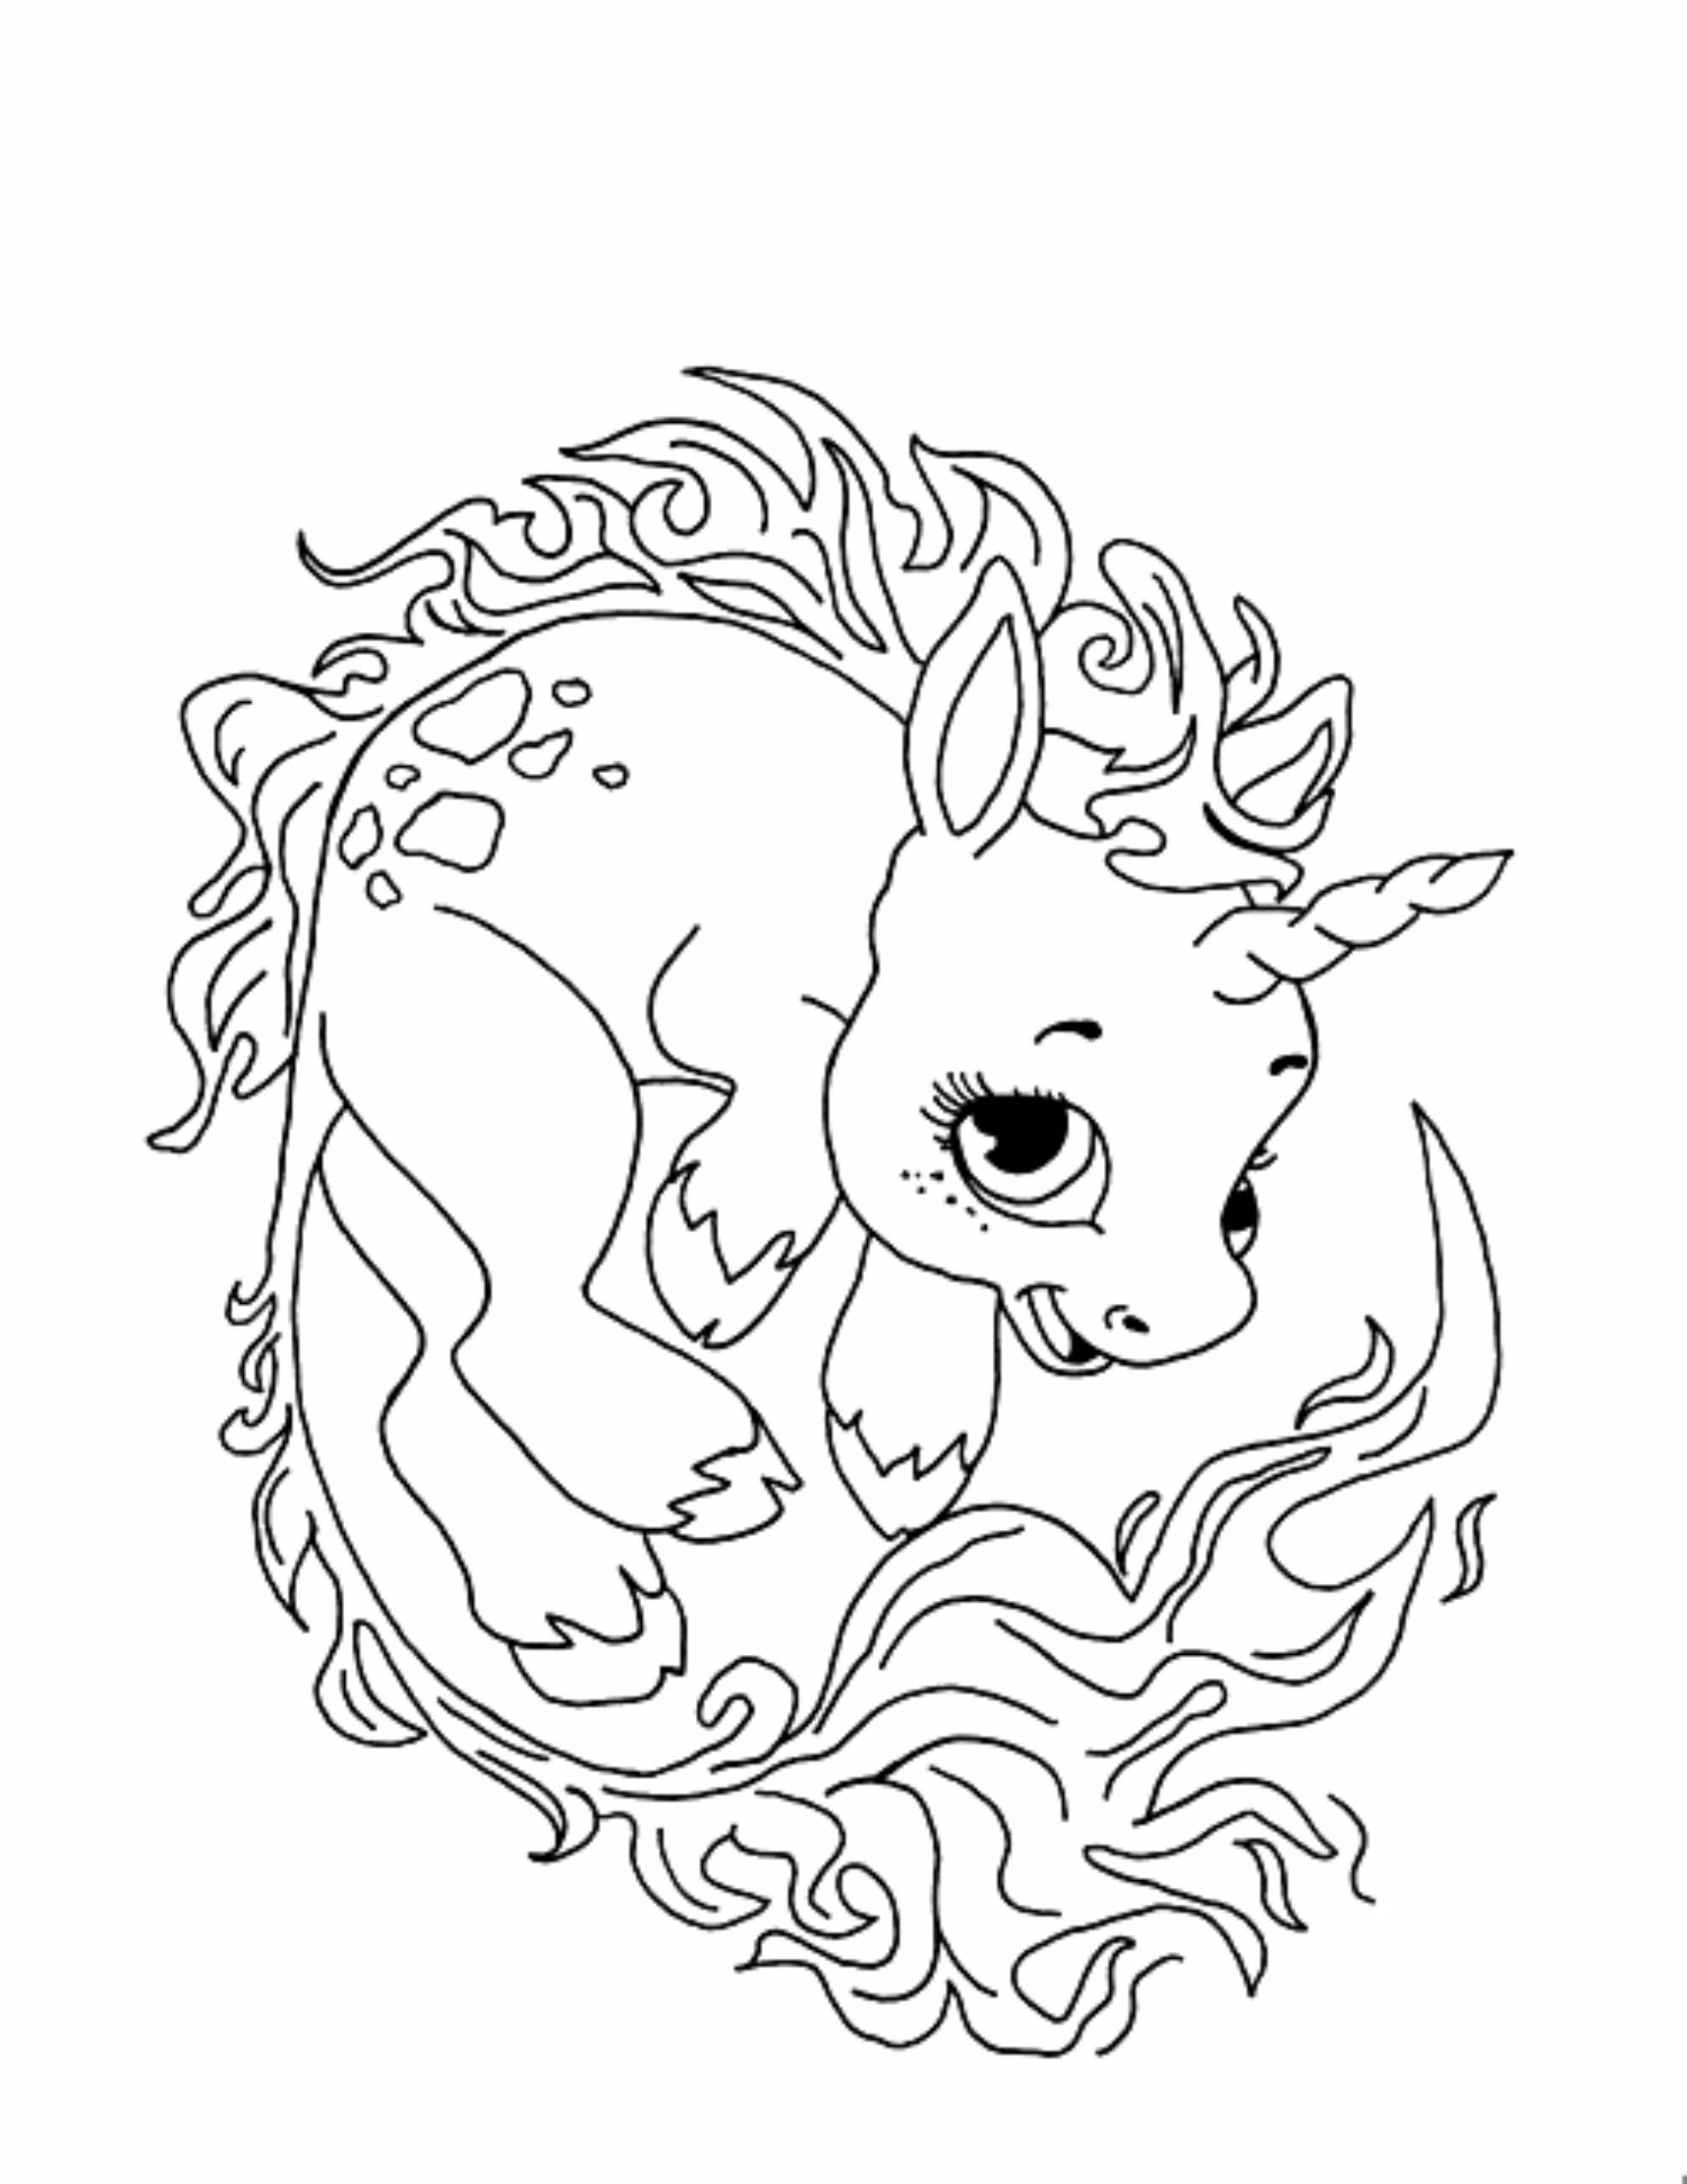 shop related products - Coloring Pages Unicorn